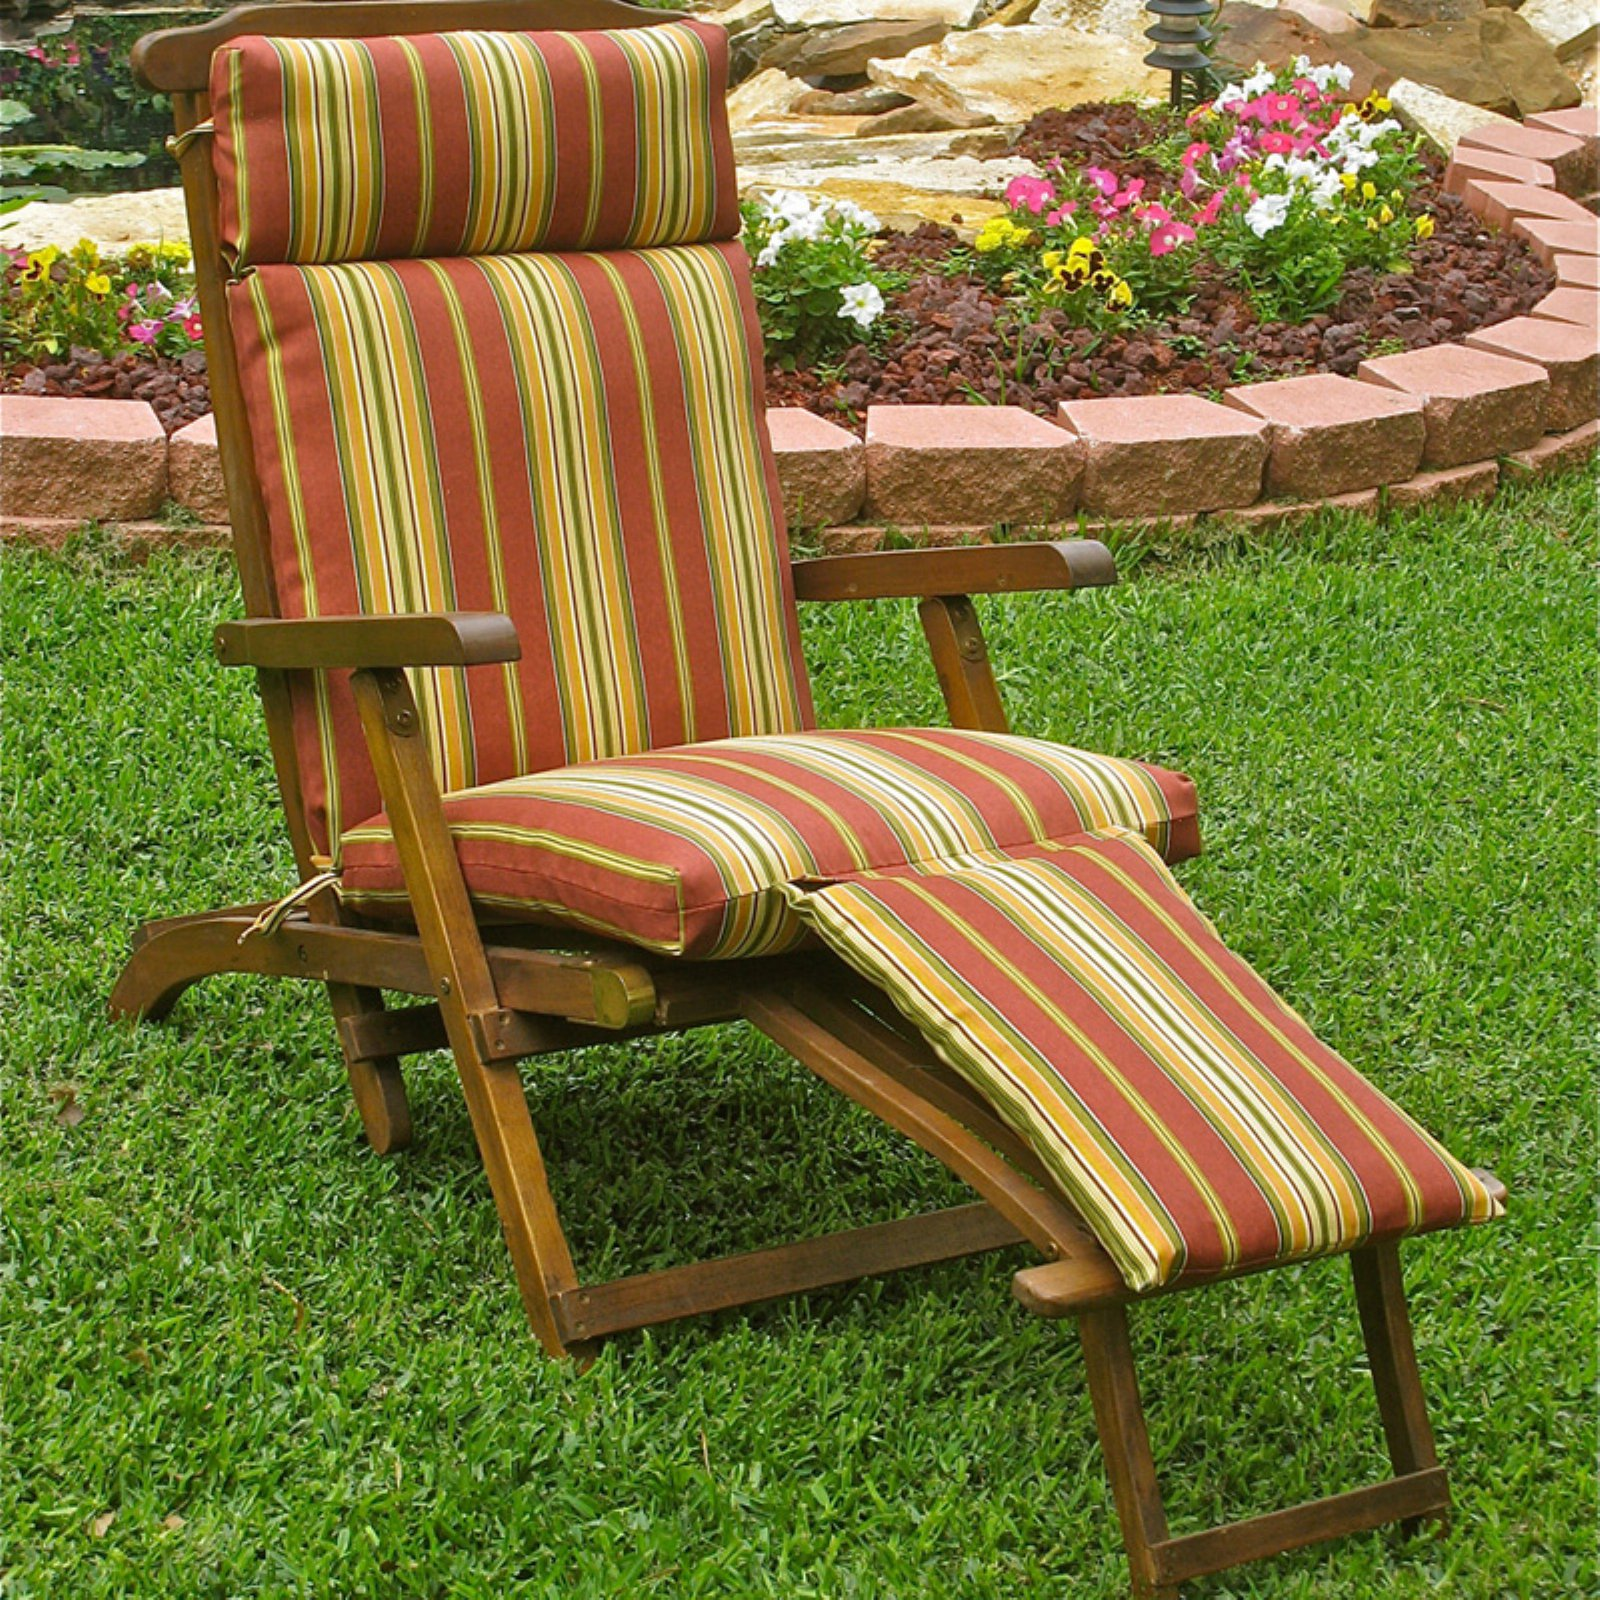 Blazing Needles Outdoor Steamer Chaise Lounge Cushion 72 X 20 In Farmington Terrace Grenadine Patio Cushions Outdoor Rocking Chairs Patio Chaise Lounge